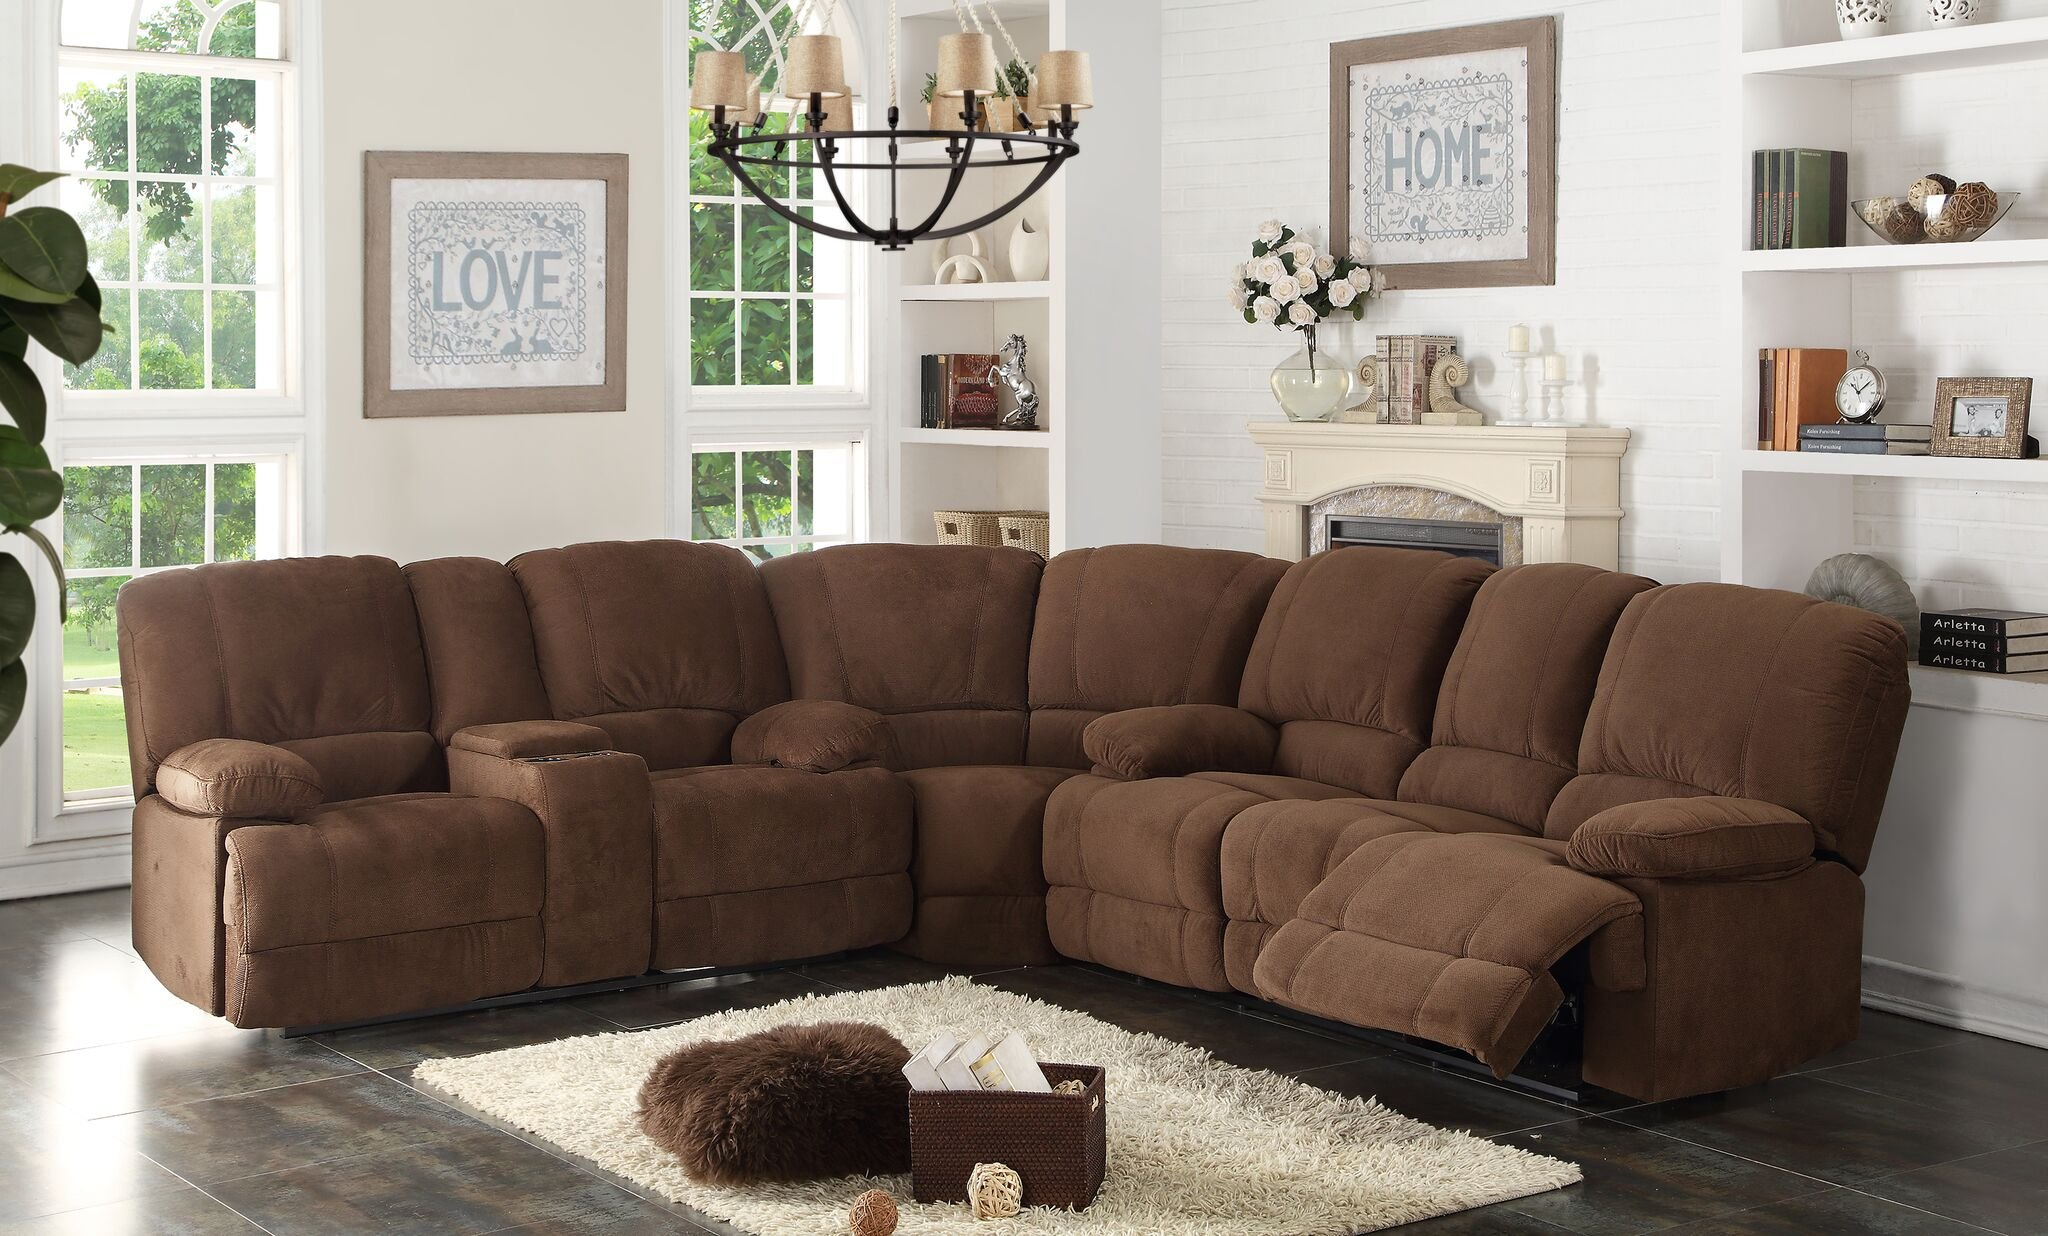 Etonnant AC Pacific Kevin Collection Contemporary 3 Piece Upholstered Transitional  Sectional Set With 4 Recliners,